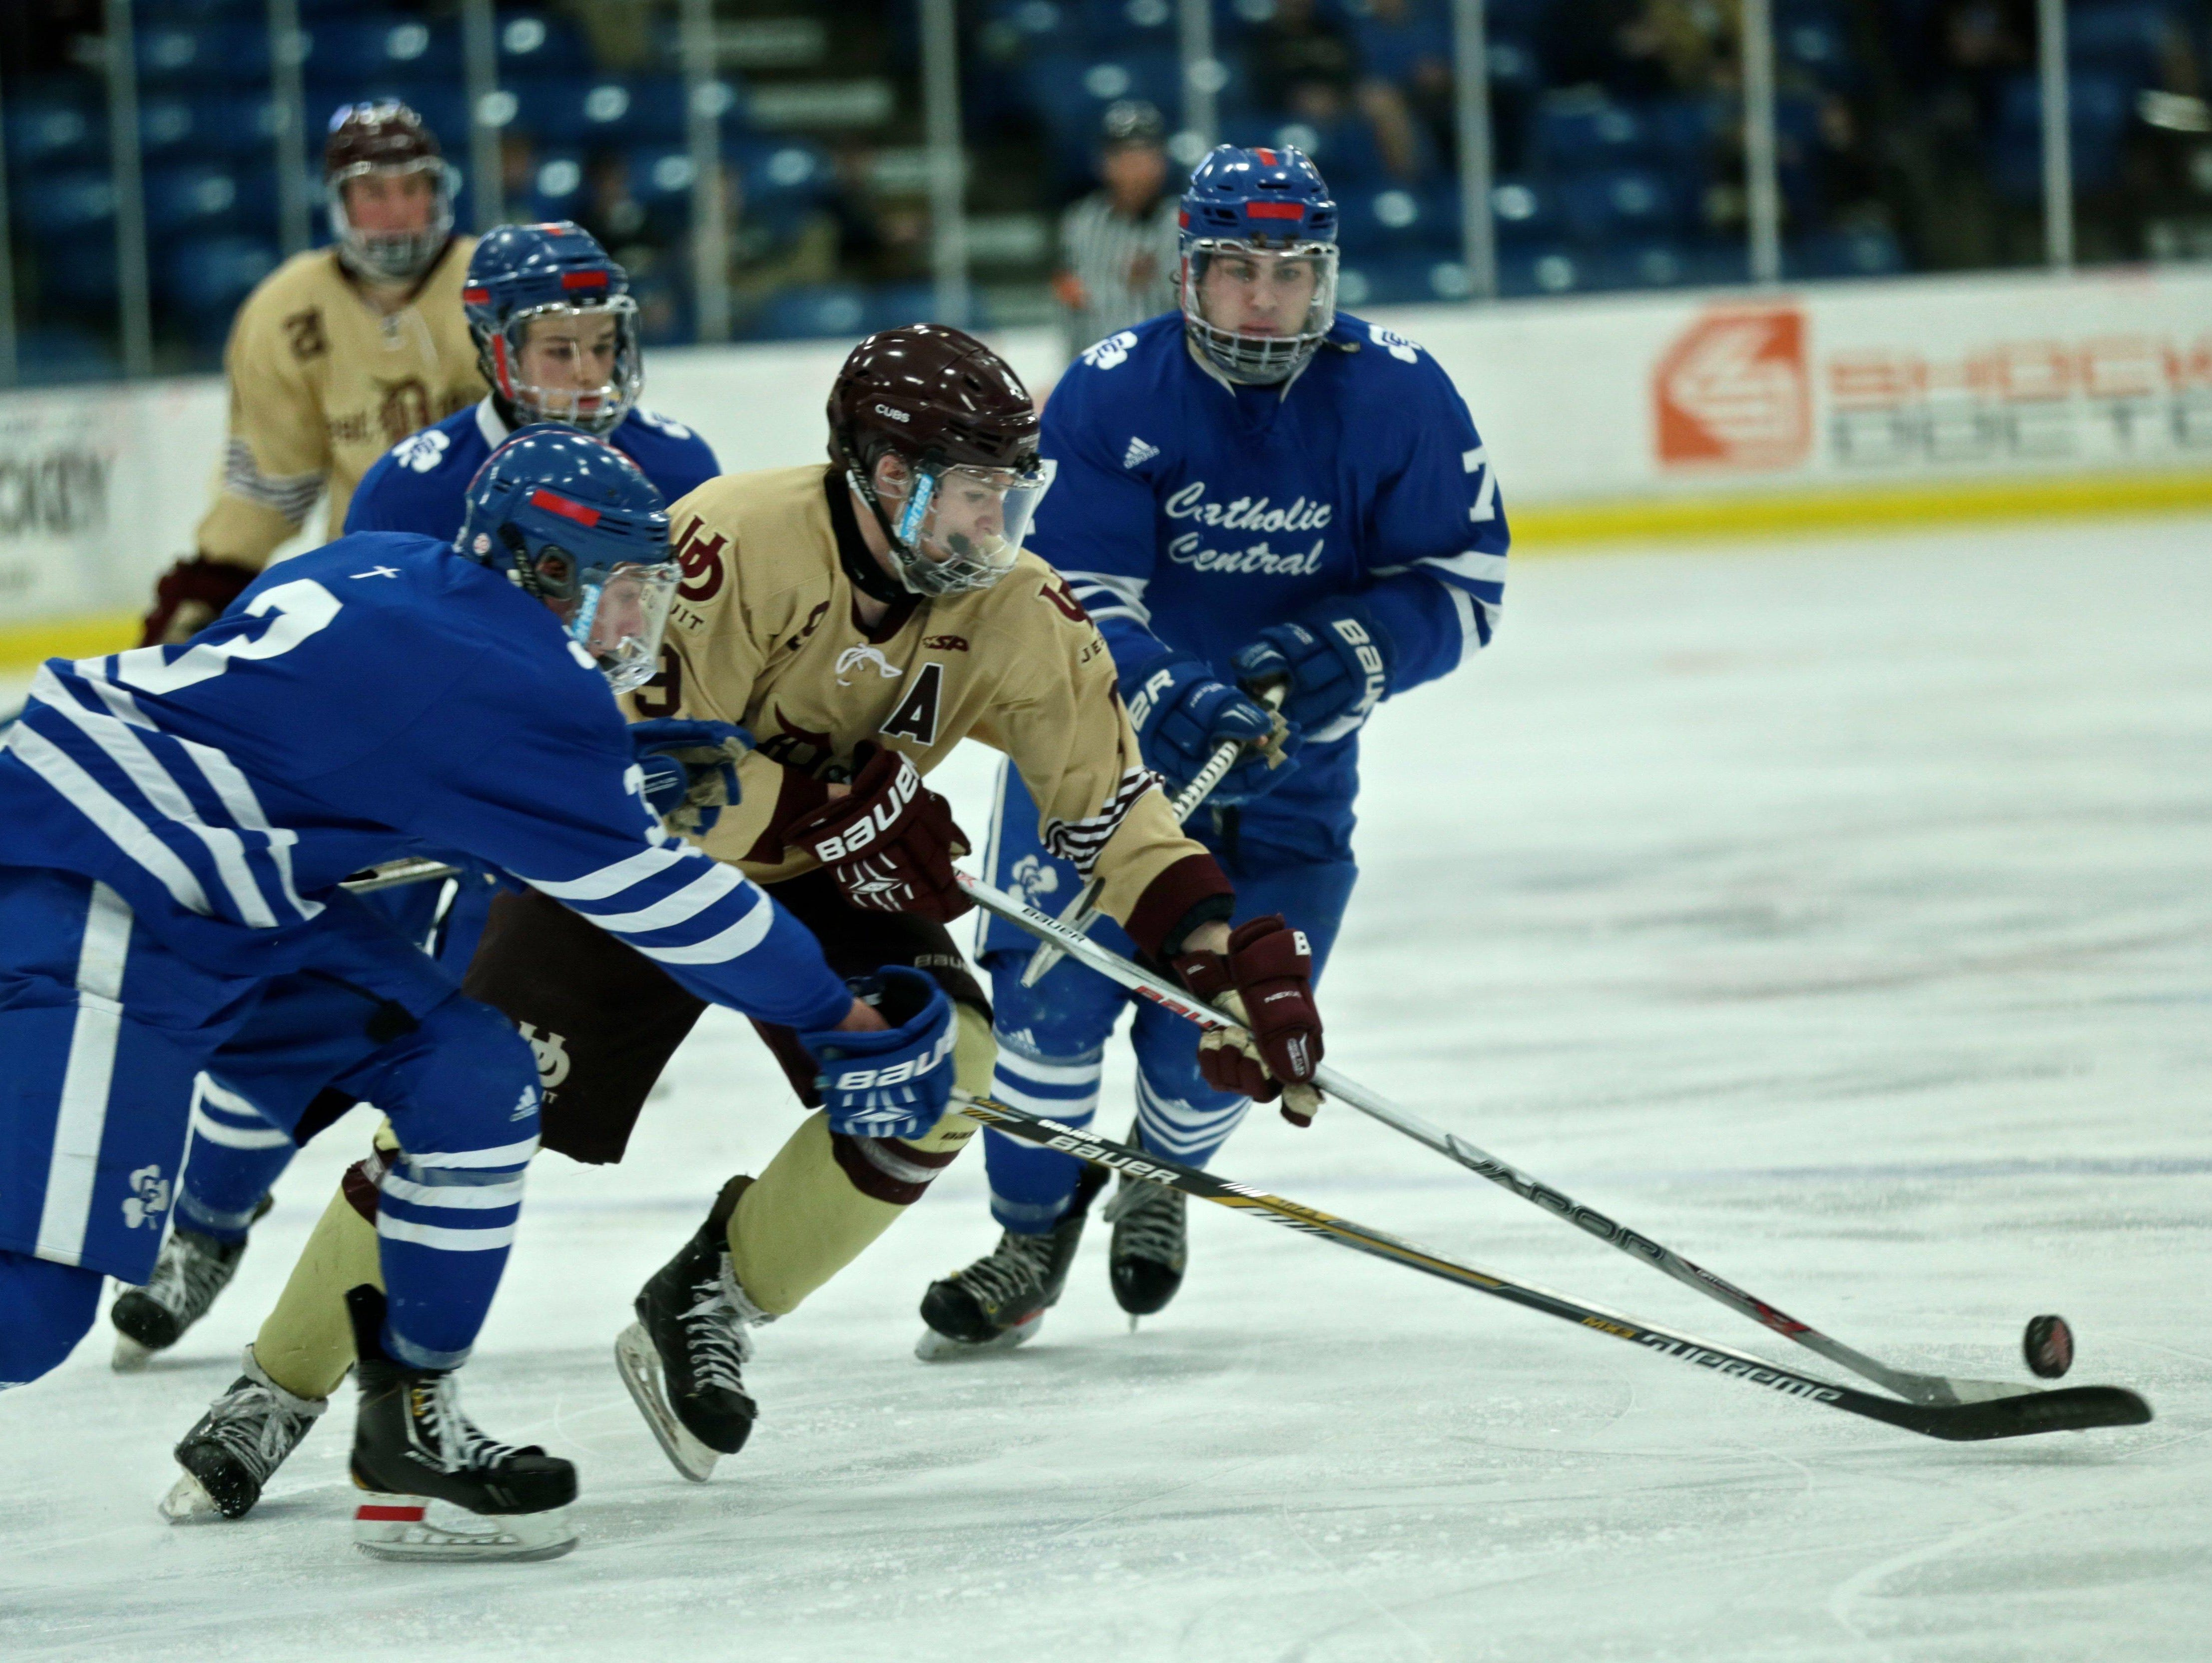 Detroit U-D Jesuit's Tommy Apap (9) skates with the puck during Detroit Catholic Central 4-3 win in the Division 1 state semifinal on Friday, March 11, 2016, at USA Hockey Arena in Plymouth, MI.